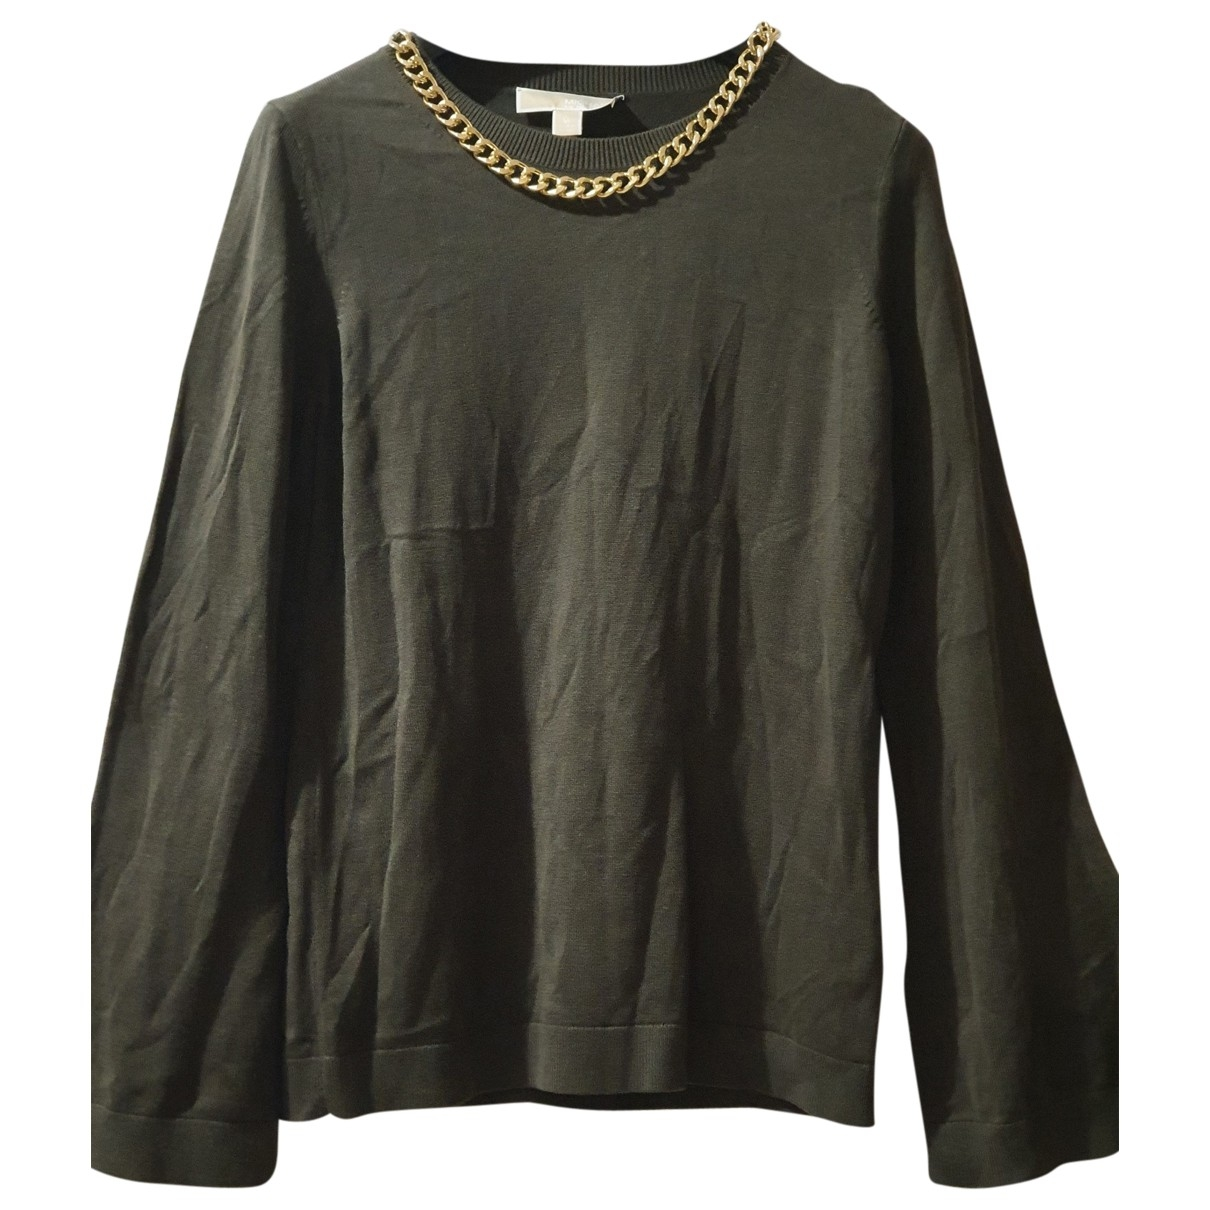 Michael Kors \N Green Cotton Knitwear for Women M International